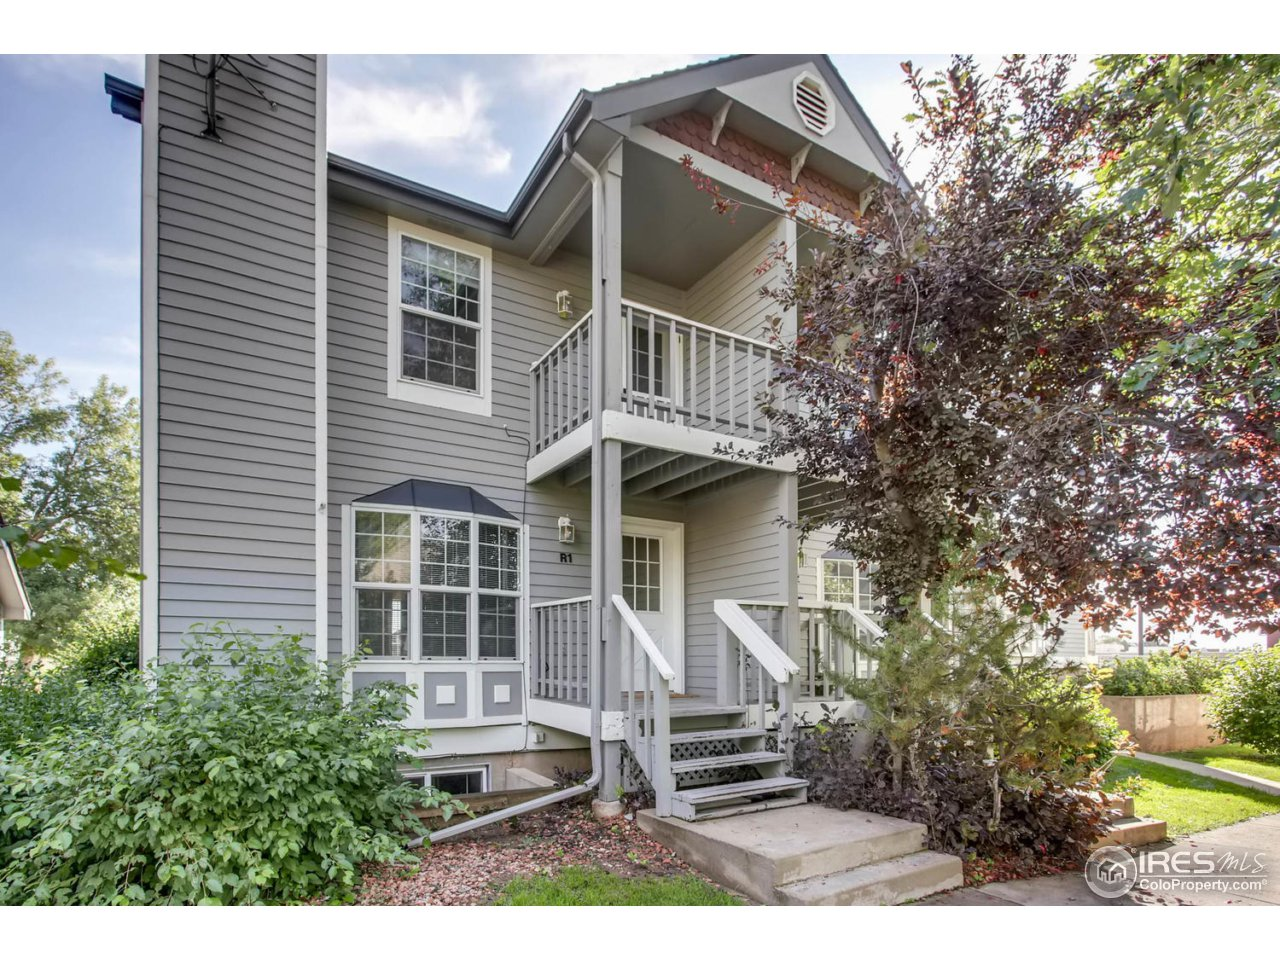 2828 Silverplume Dr R1, Fort Collins, CO 80526